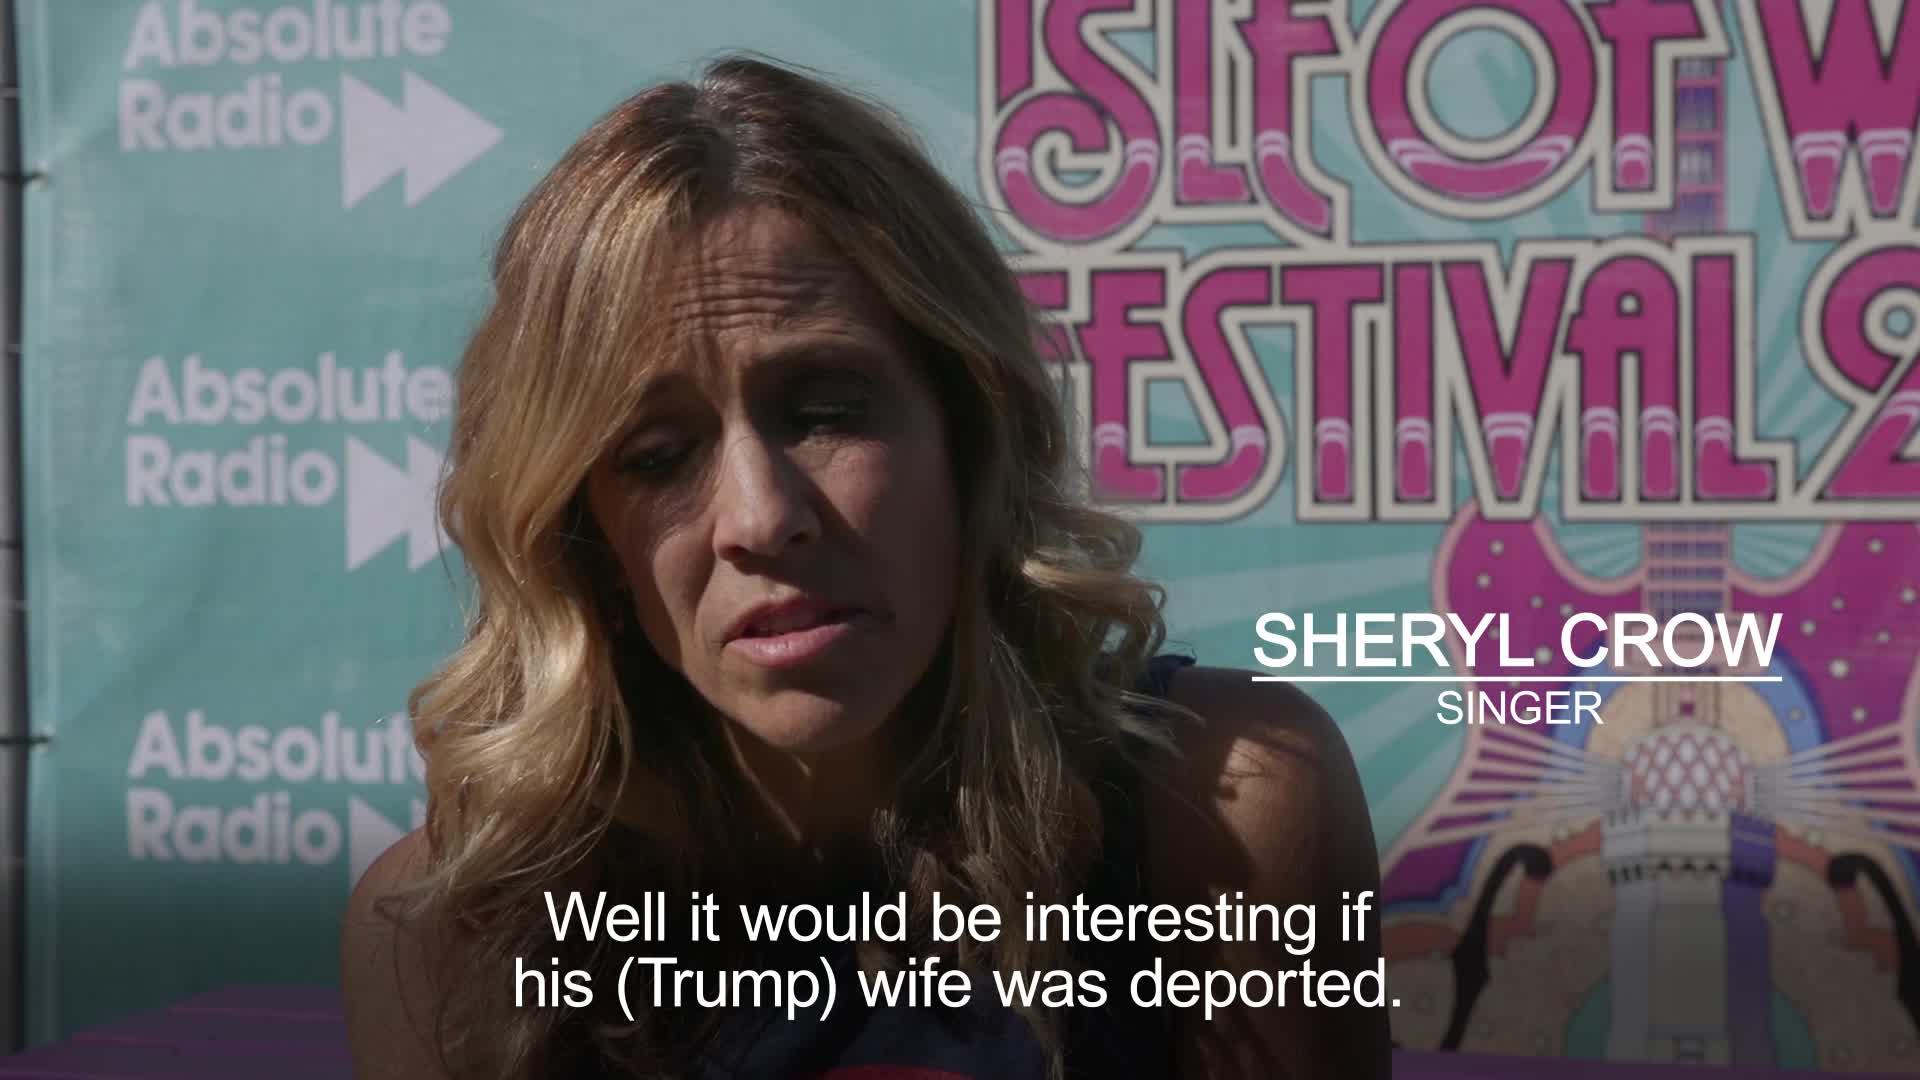 Sheryl Crow On Trump It Would Be Interesting If His Wife Was Deported